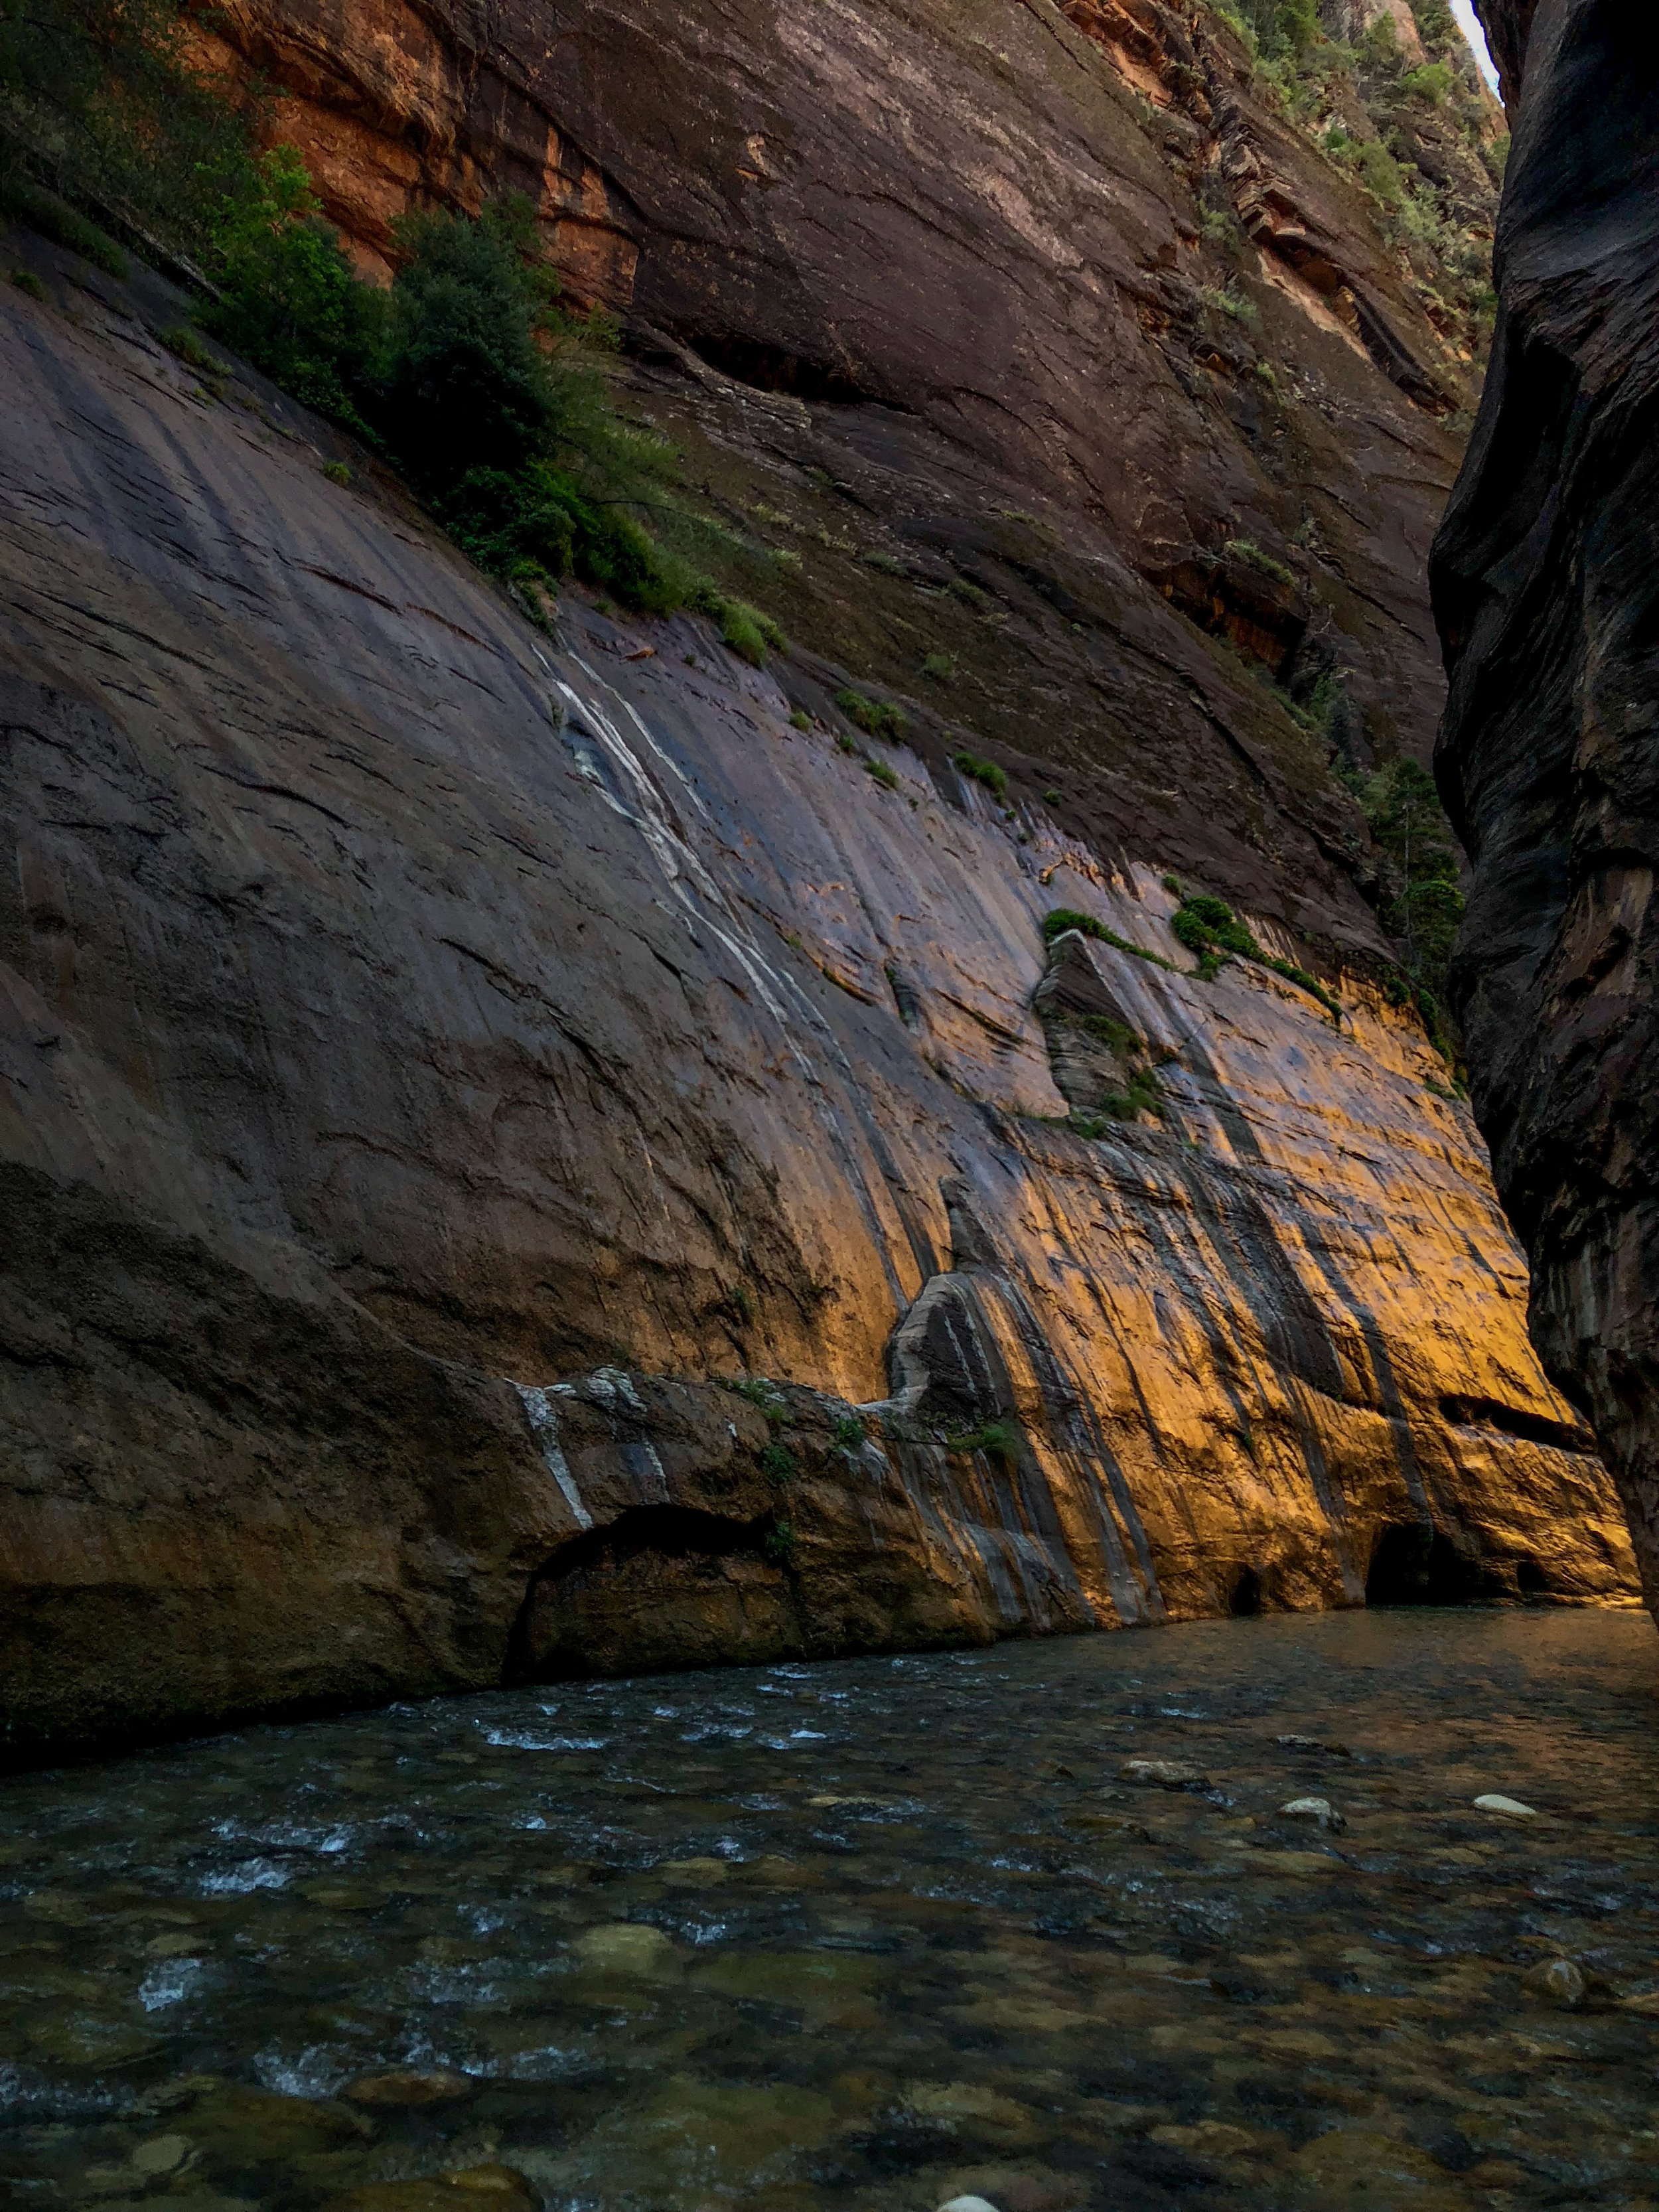 Early into the hike, this is how the walls looked with the sun coming up through the canyon.